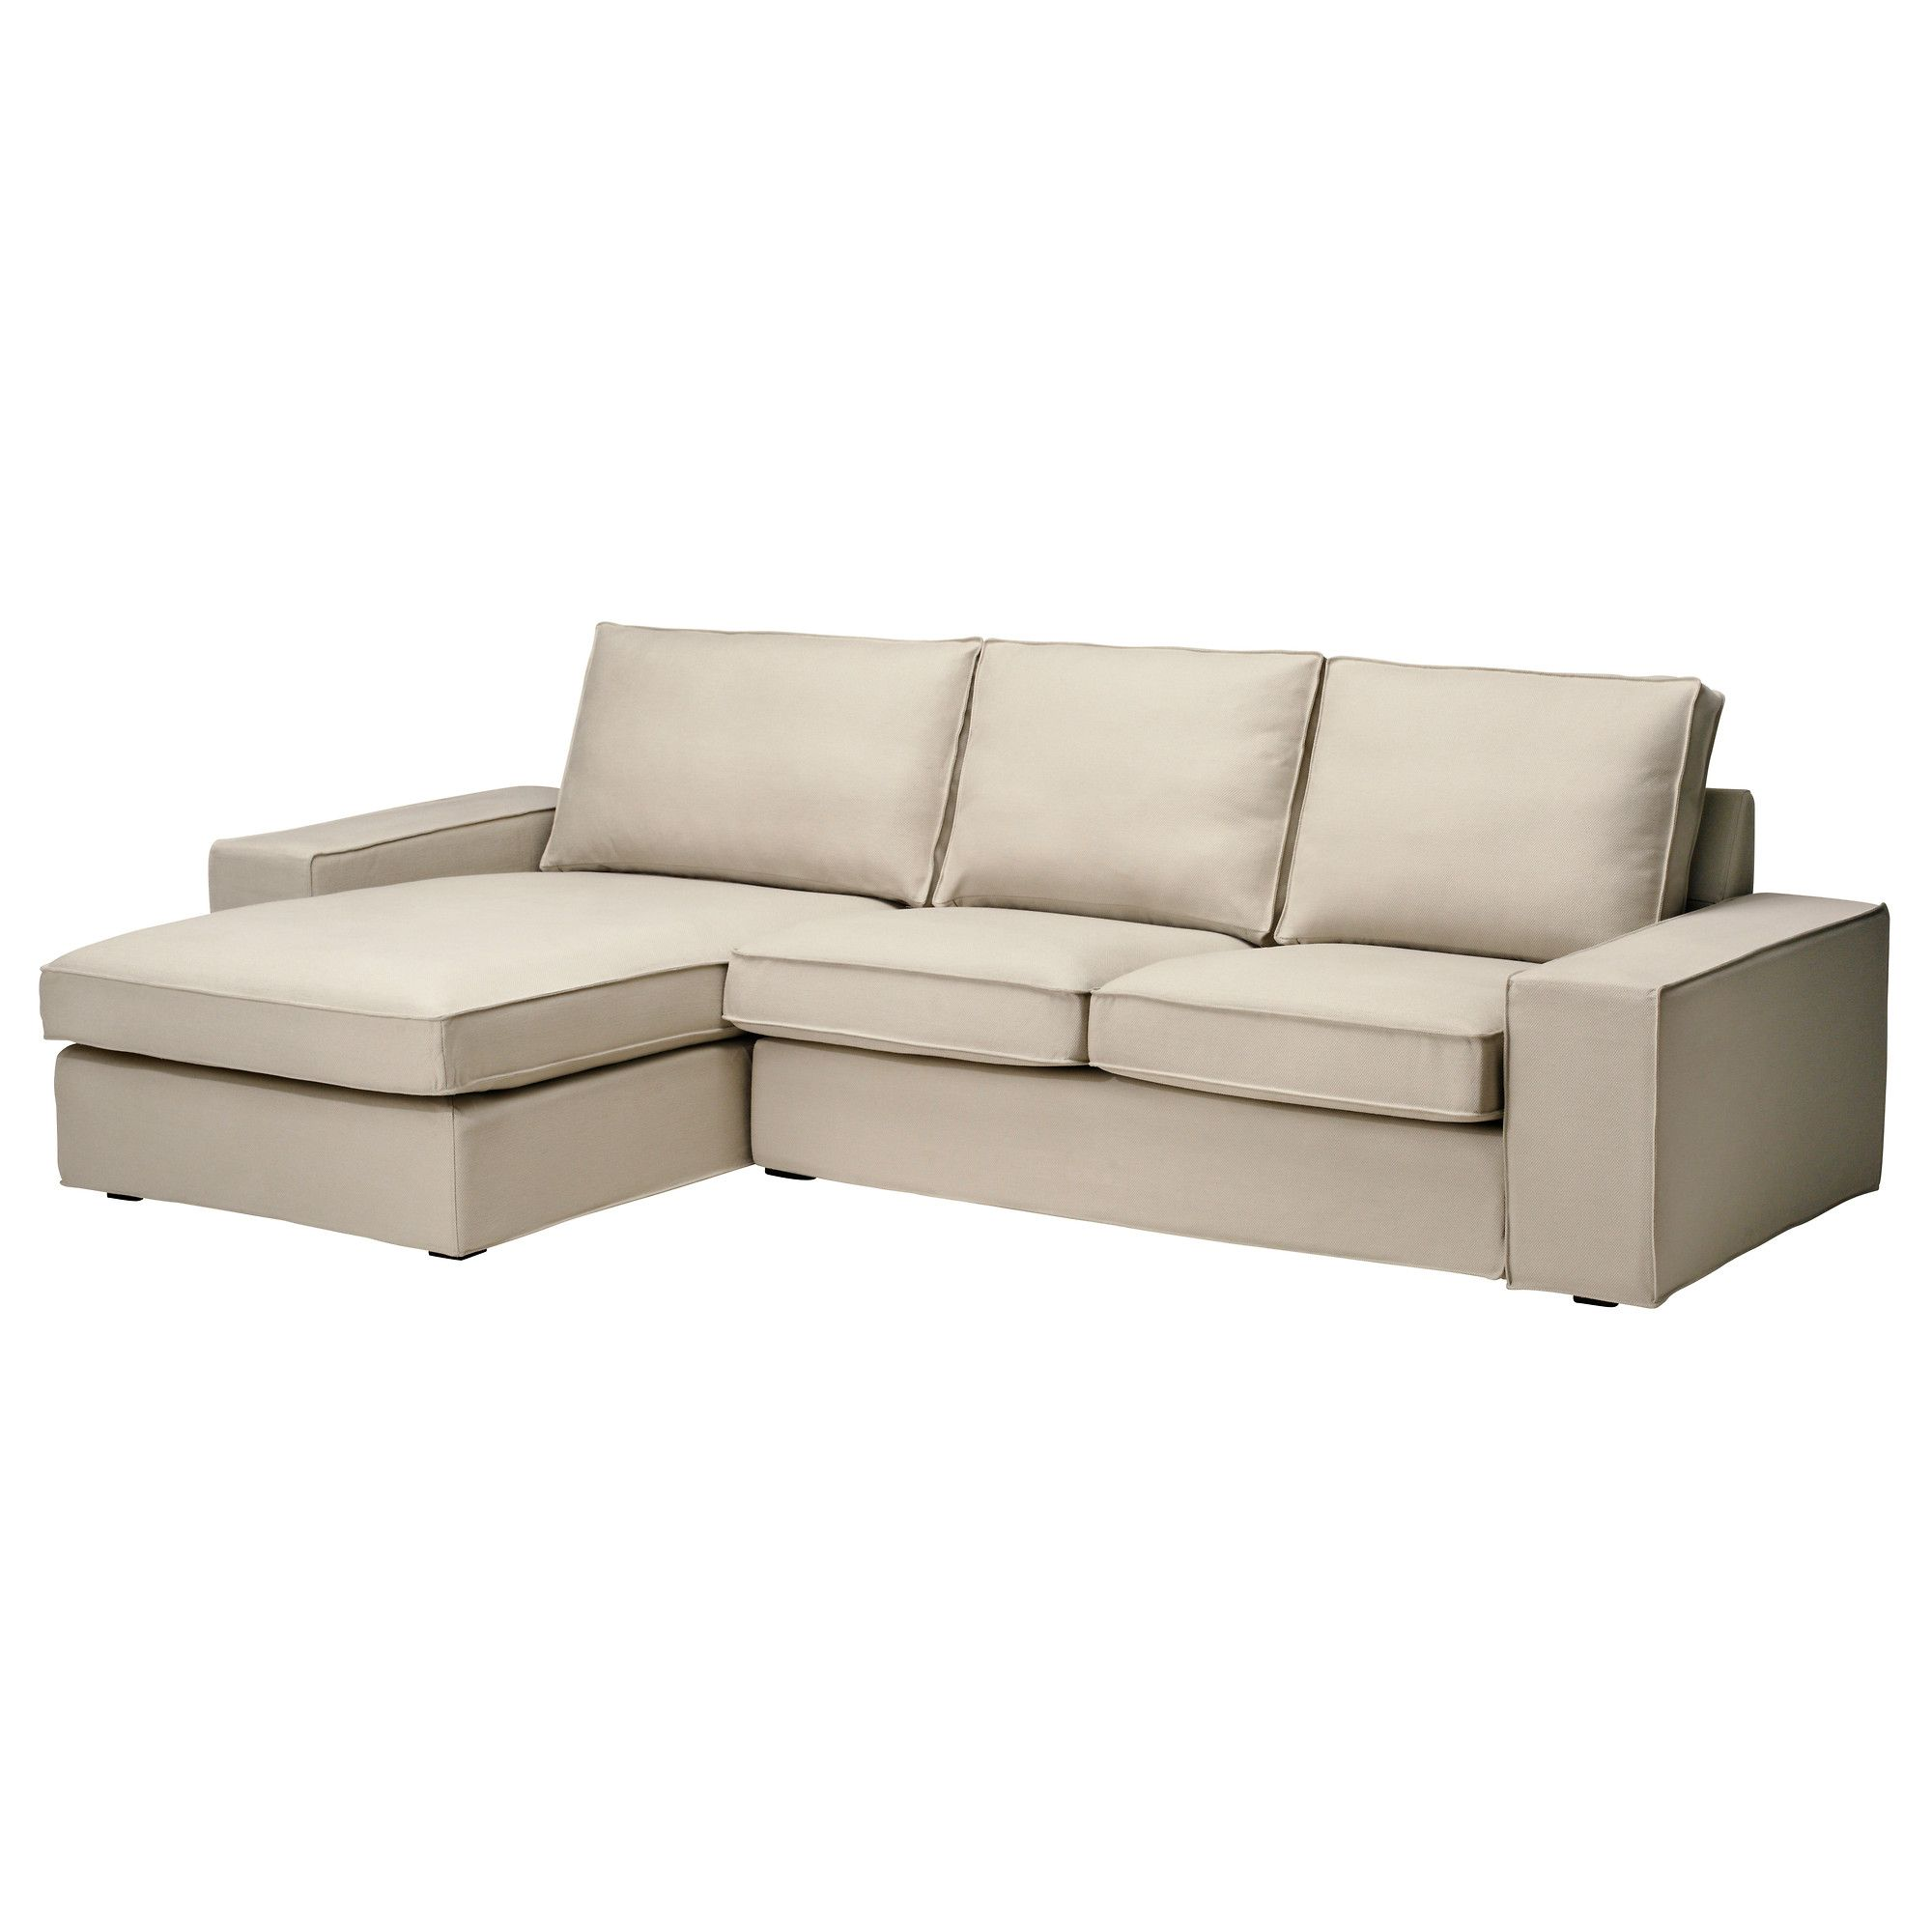 Vimle Sofa Ikea Dubai Kivik Loveseat And Chaise Lounge Ikea Home Ikea Loveseat